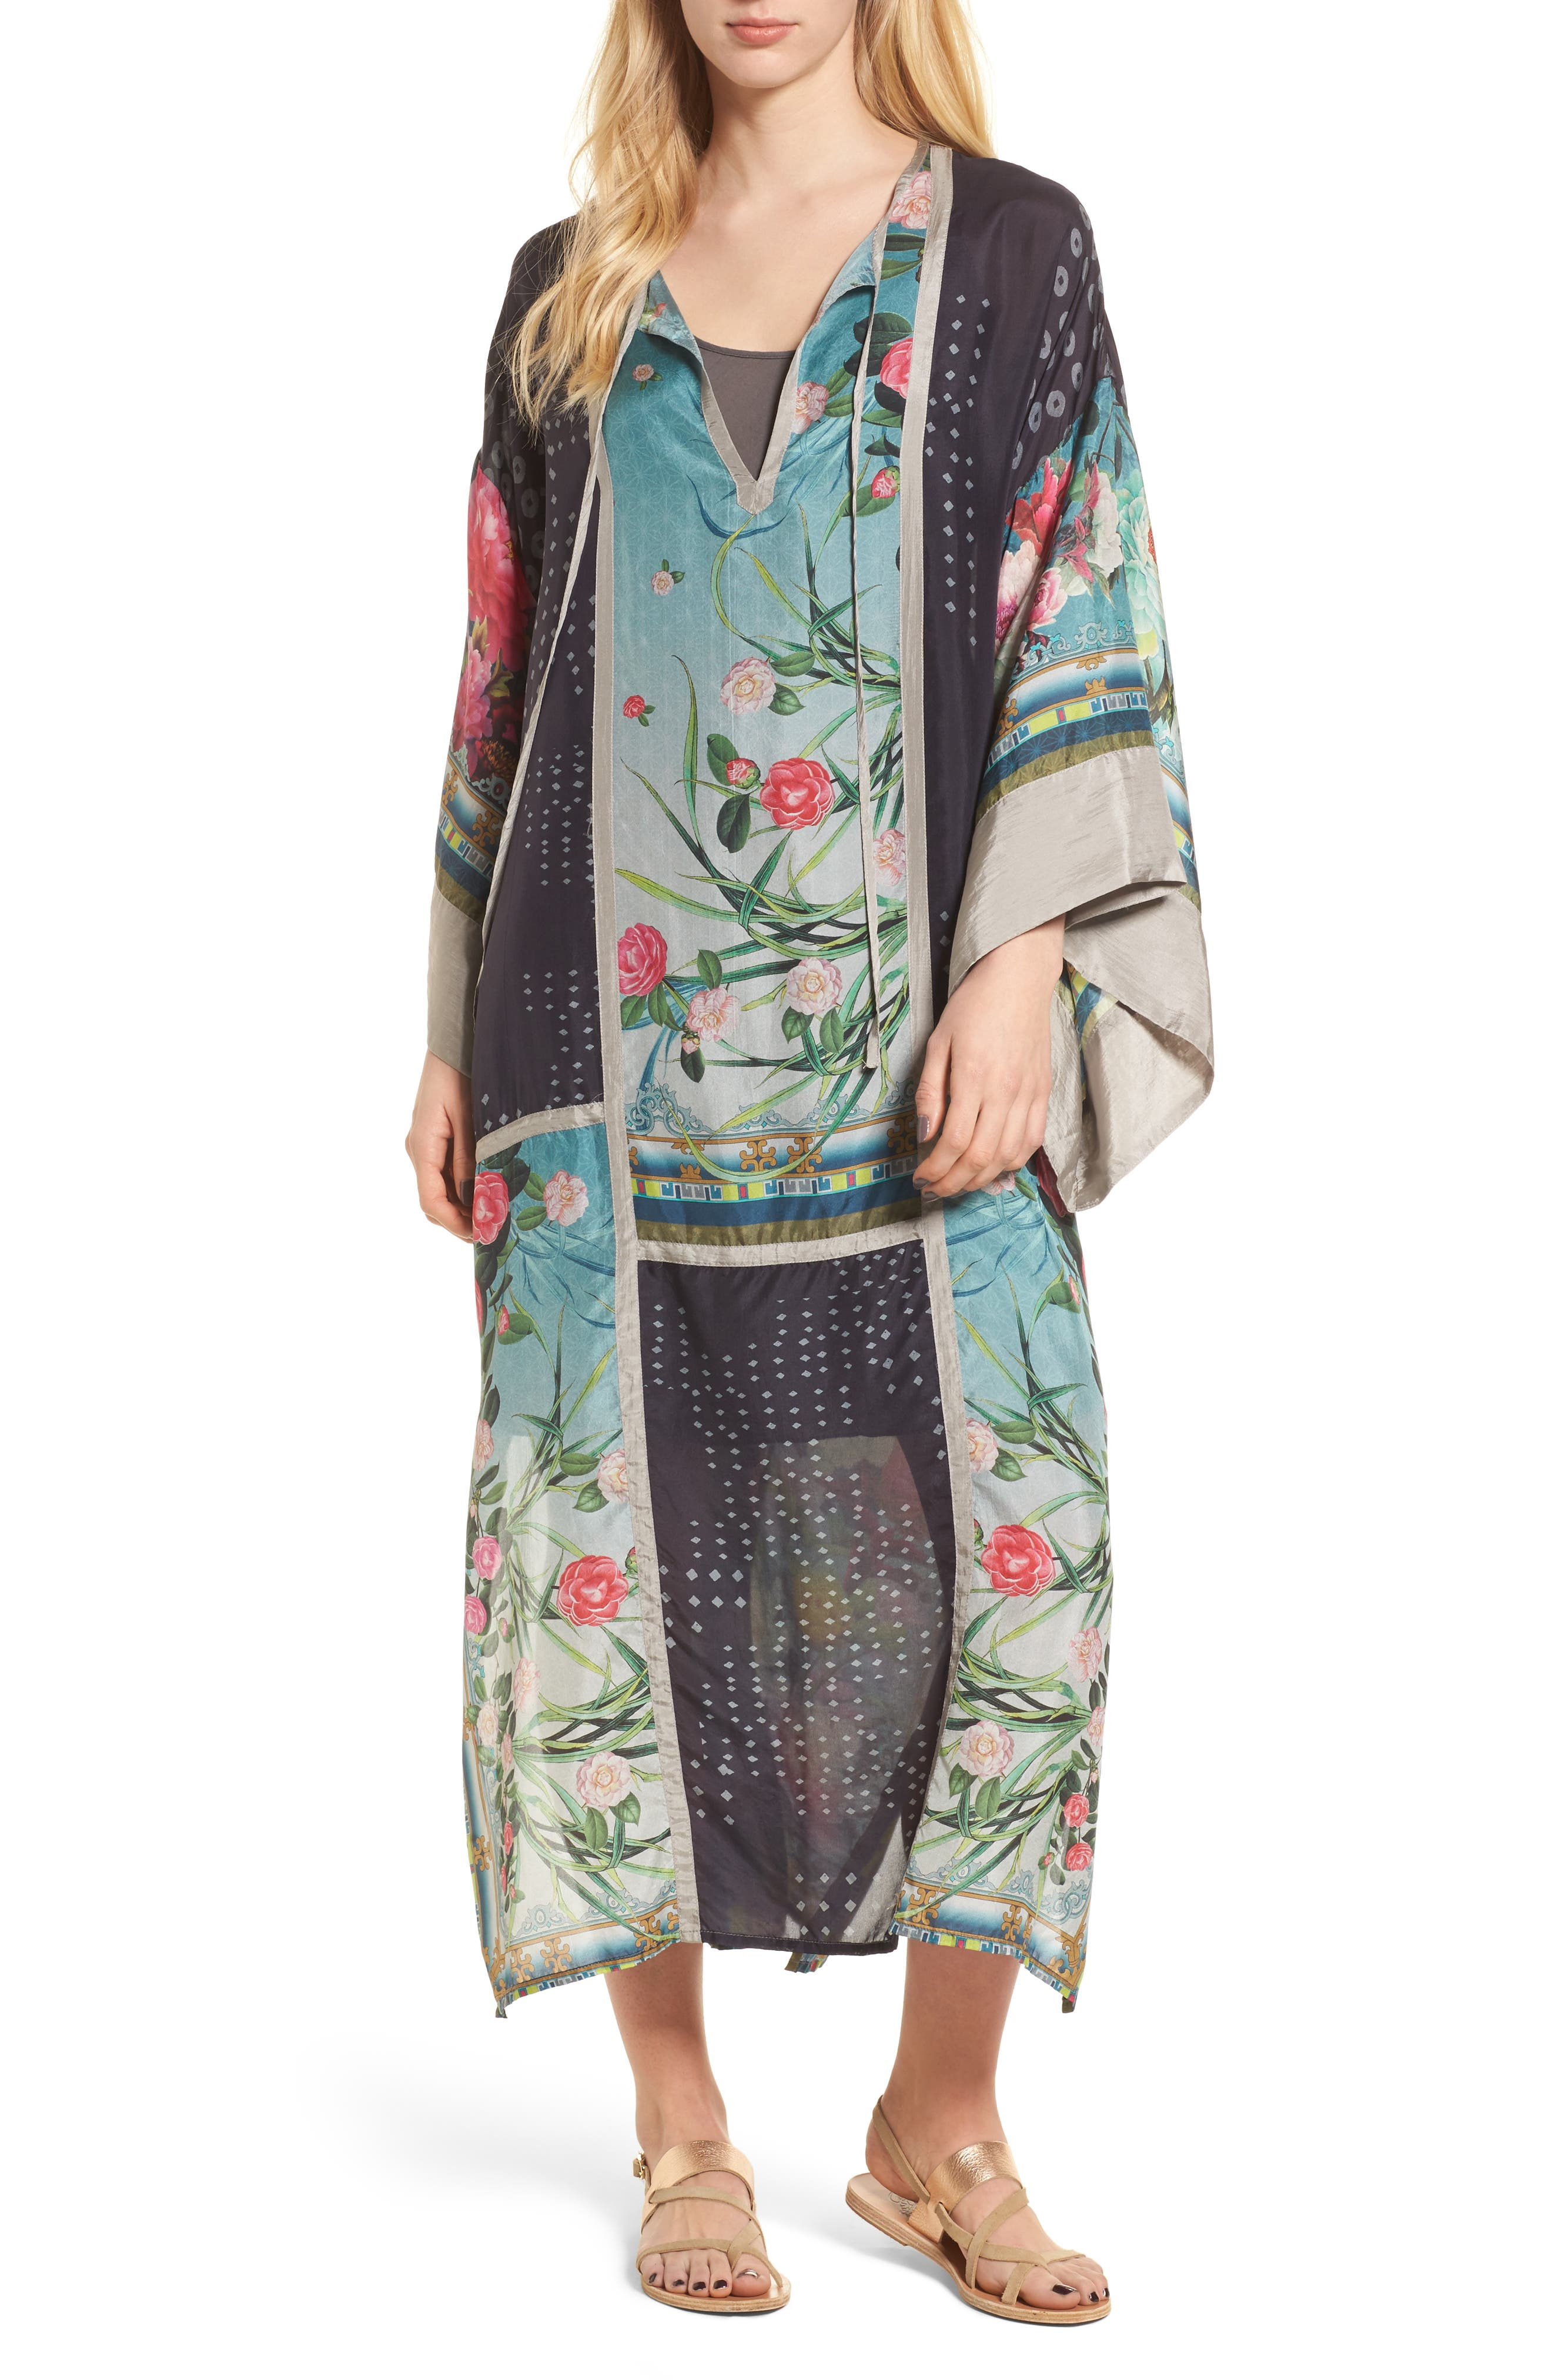 Camuba Heaven Silk Kimono Dress,                         Main,                         color, 010